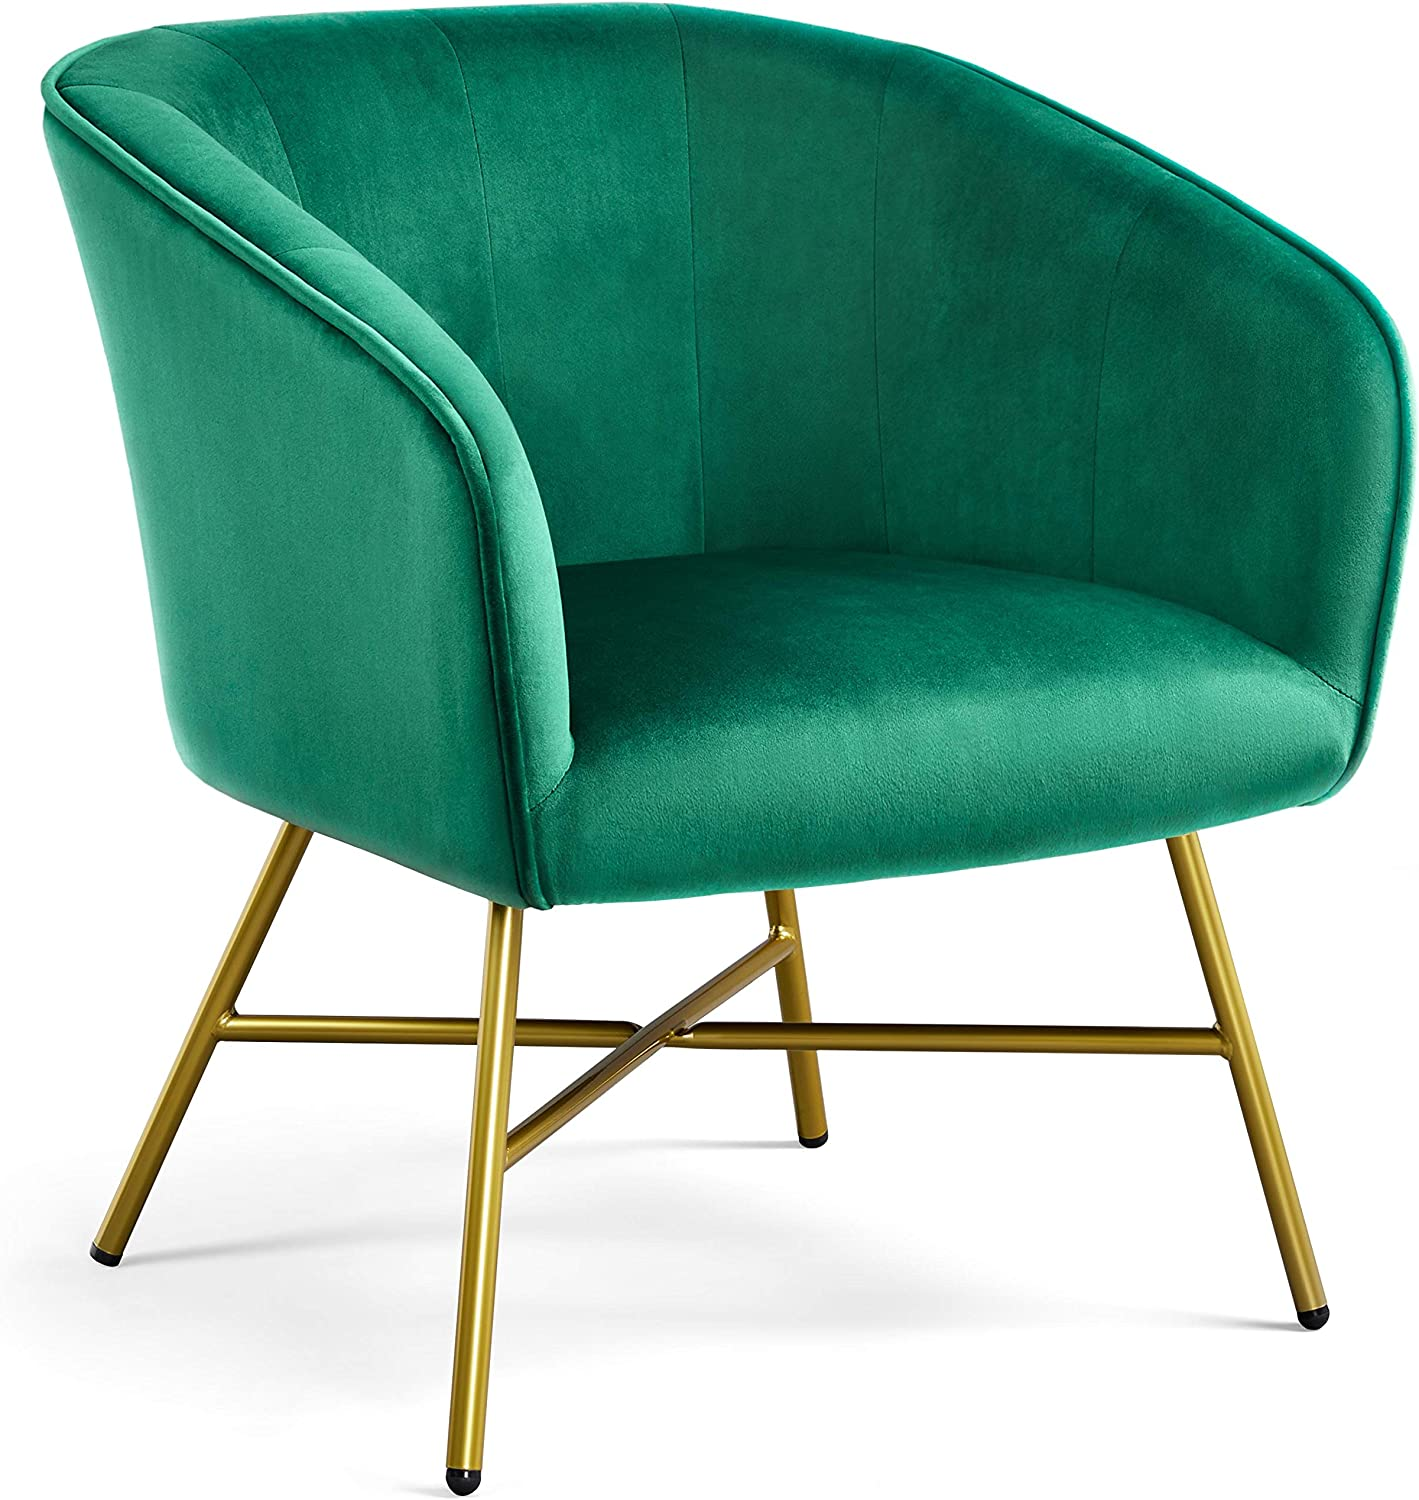 YAHEETECH Accent Chair Armchair Living Room Chair Upholstered Barrel Chair Velvet Comfy Lounge Chair Sofa Side Chair for Living Room Bedroom Dining Room Office Green